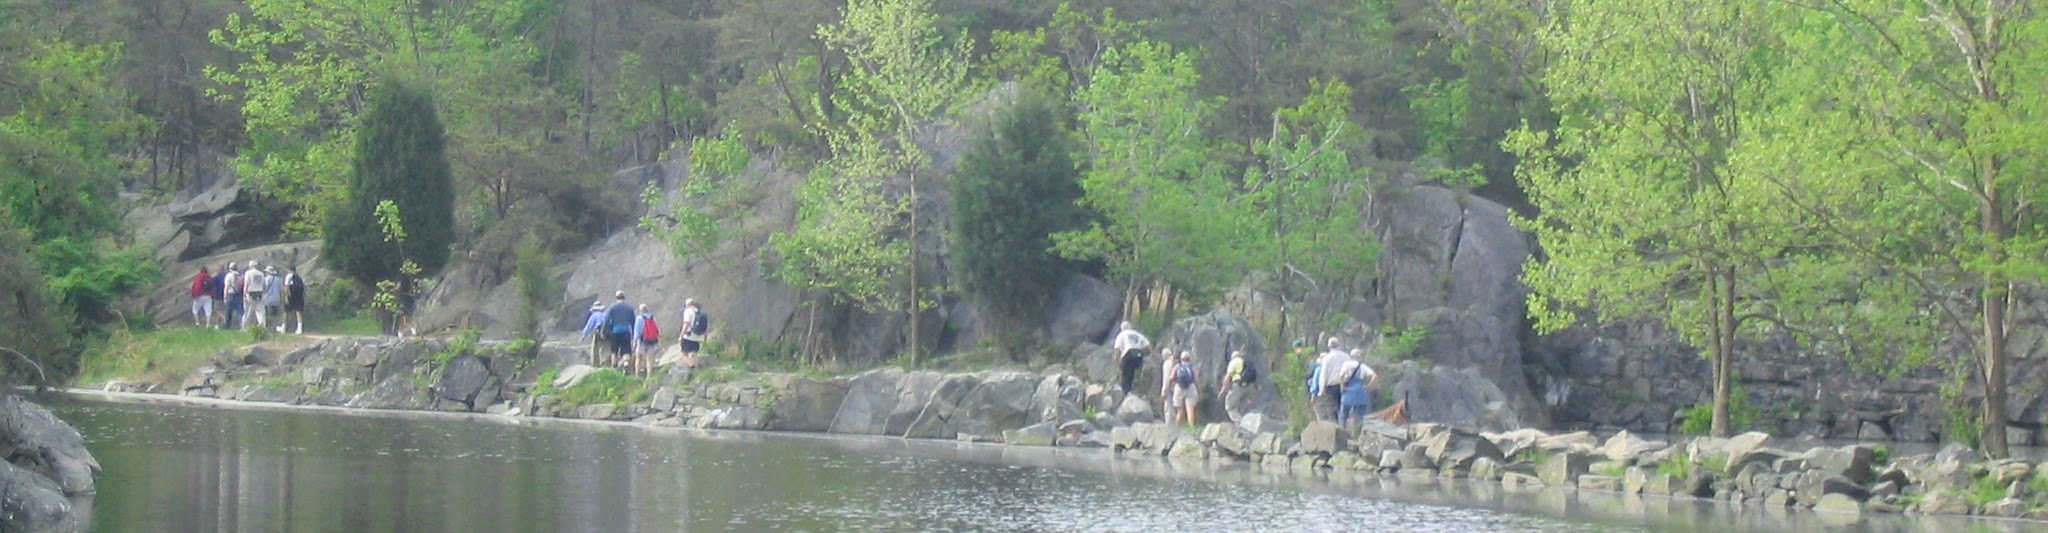 Hikers along canal